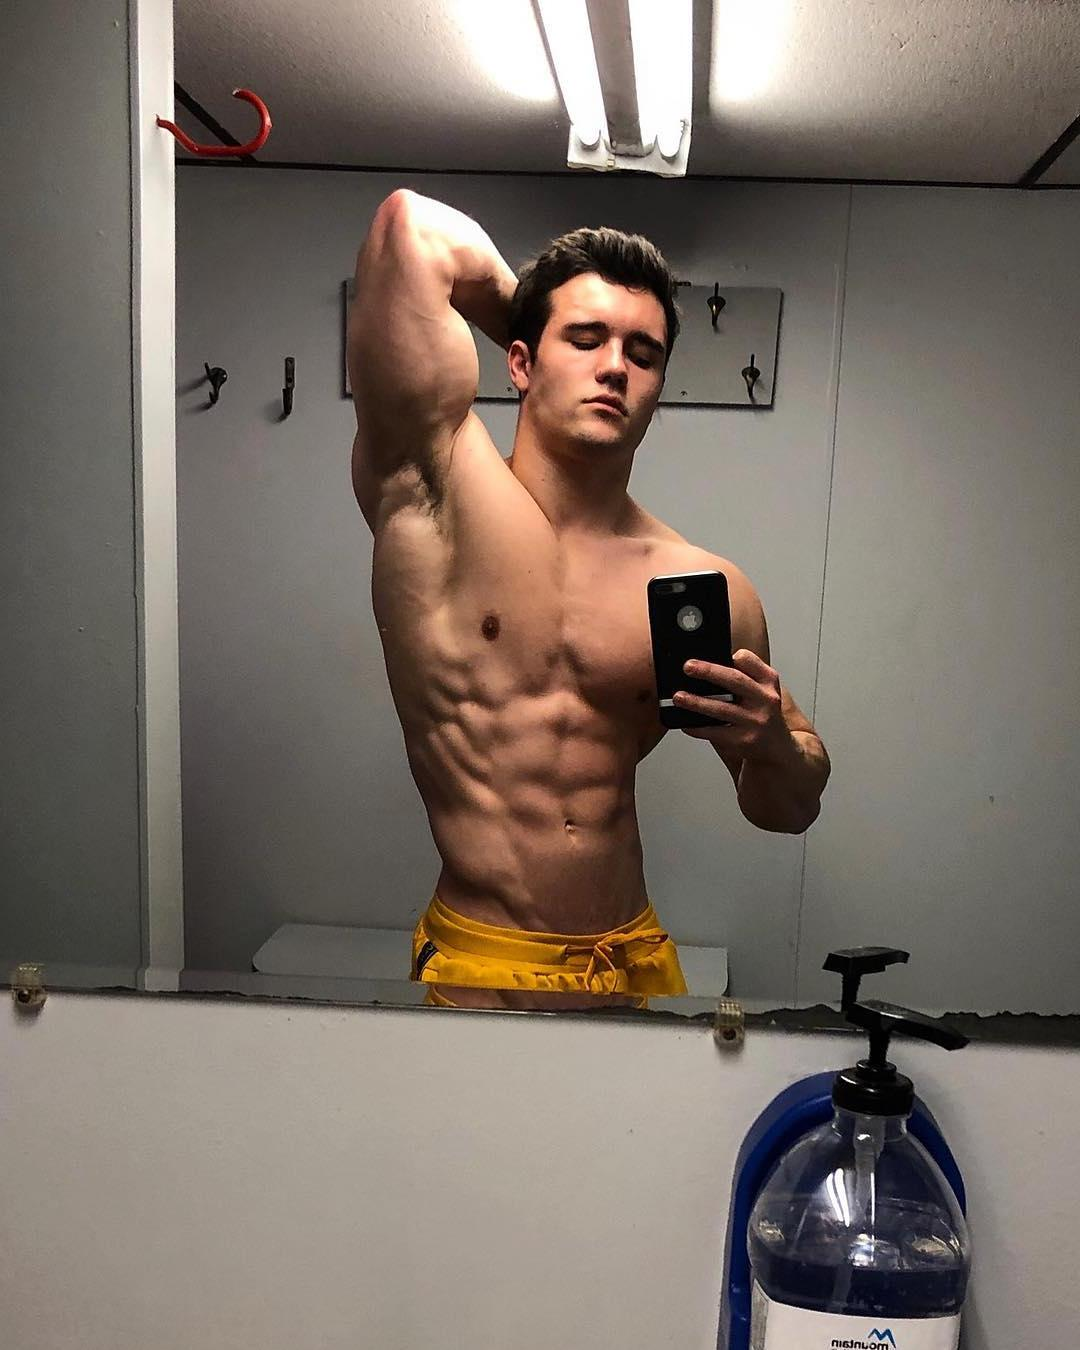 cocky-fit-young-shirtless-hunk-sexy-muscular-bad-boy-selfie